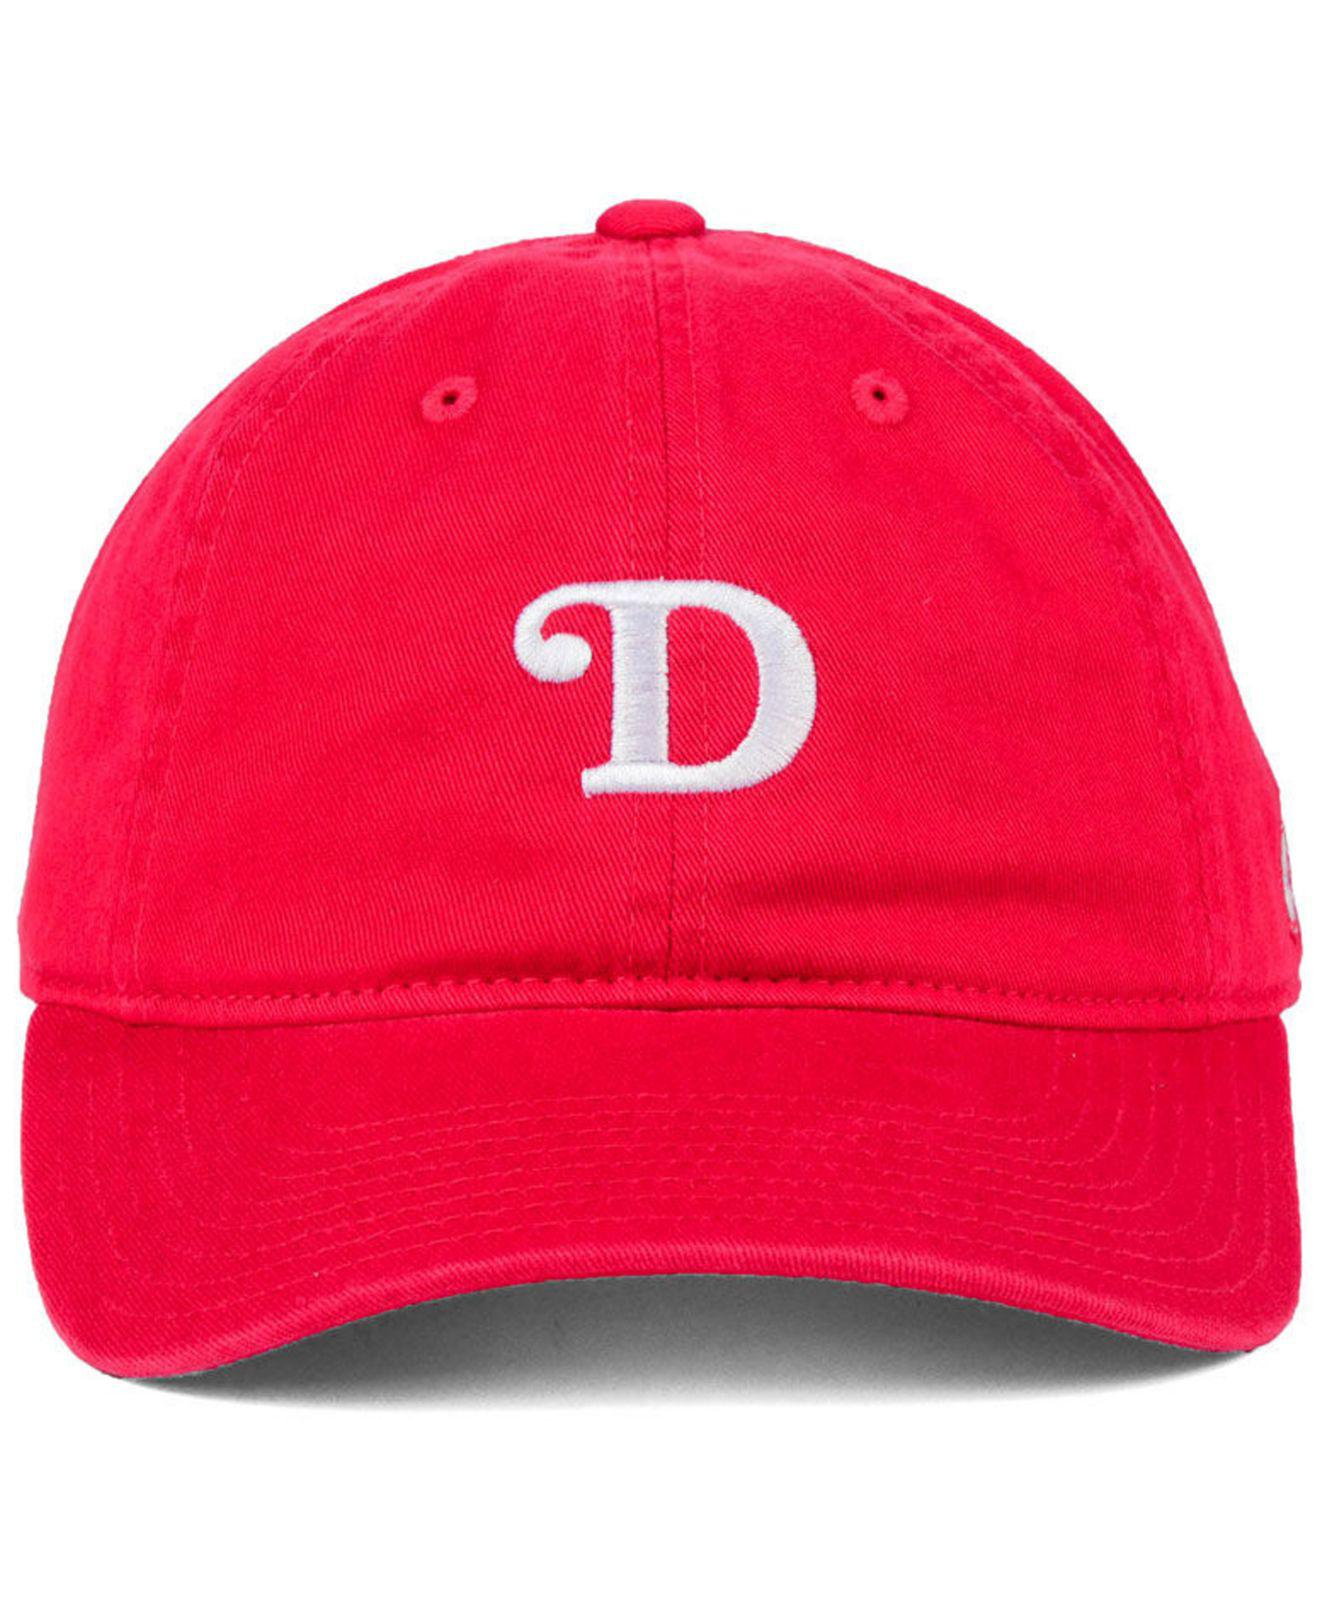 Lyst - Adidas Detroit Red Wings Element Logo Adjustable Cap in Red ... 2920ed514